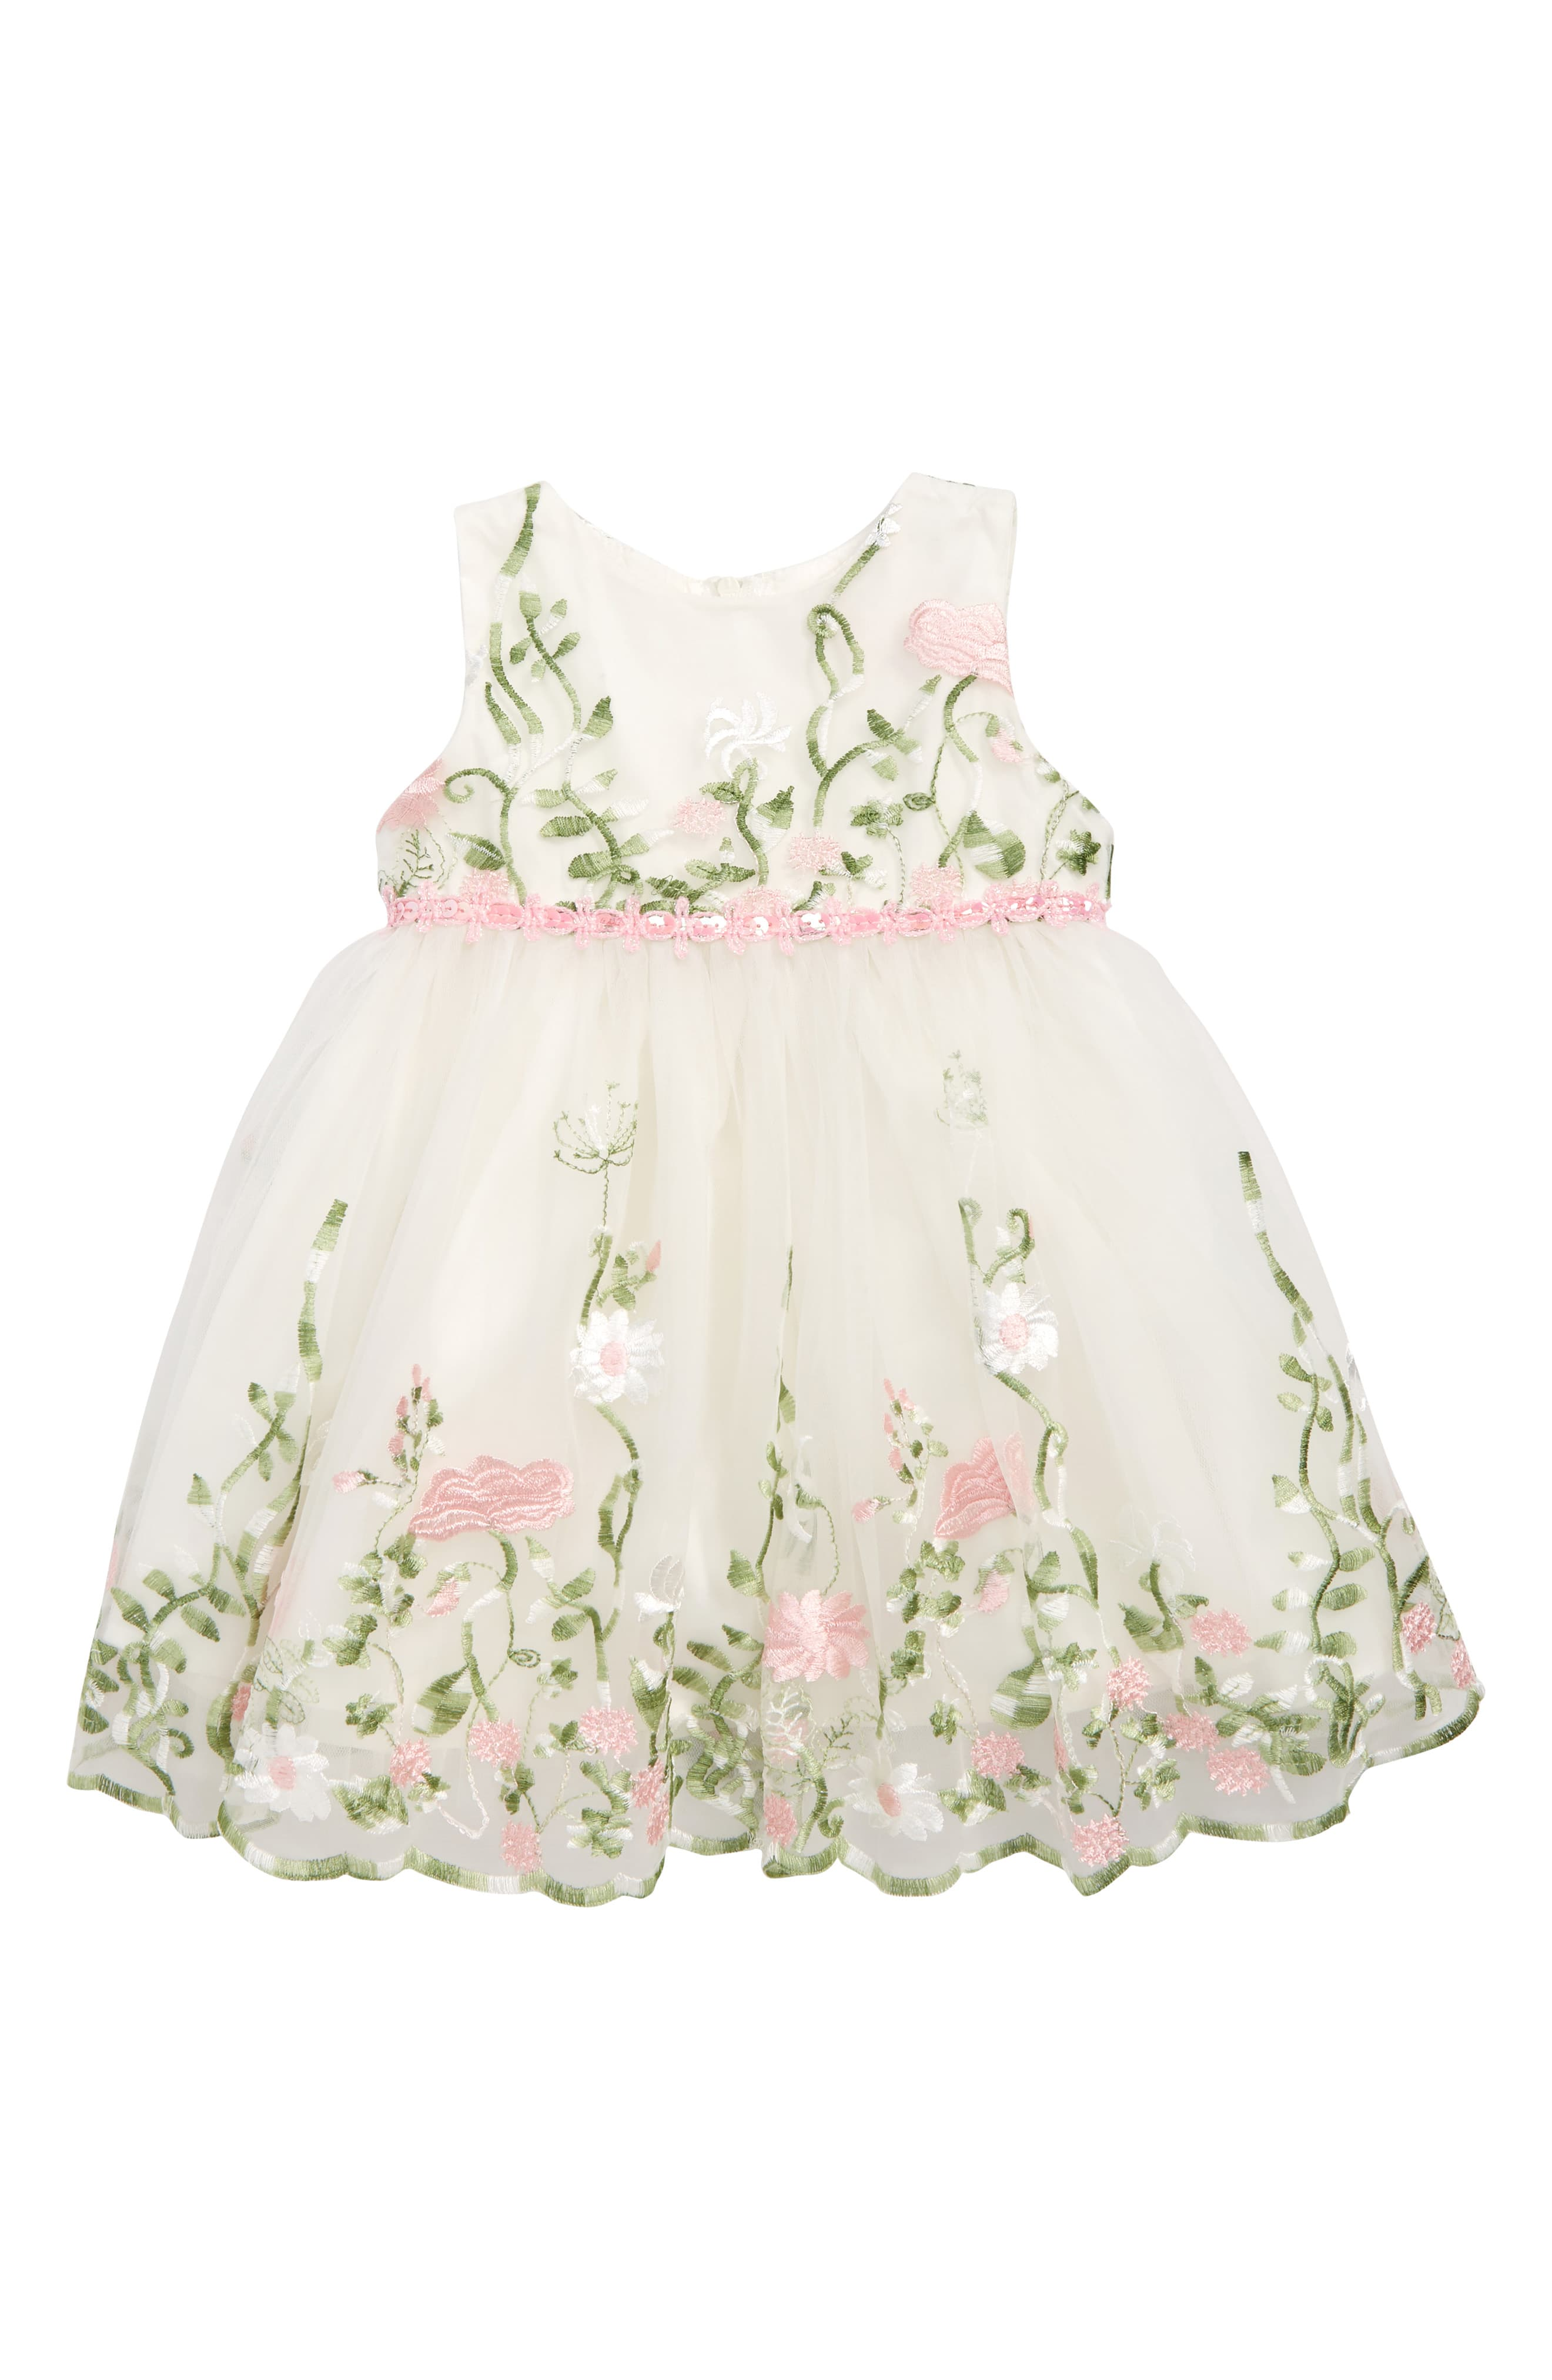 6c2ca6a11 Infant Girl's Popatu Floral Embroidered Tulle Fit & Flare Dress, Size 9M -  White